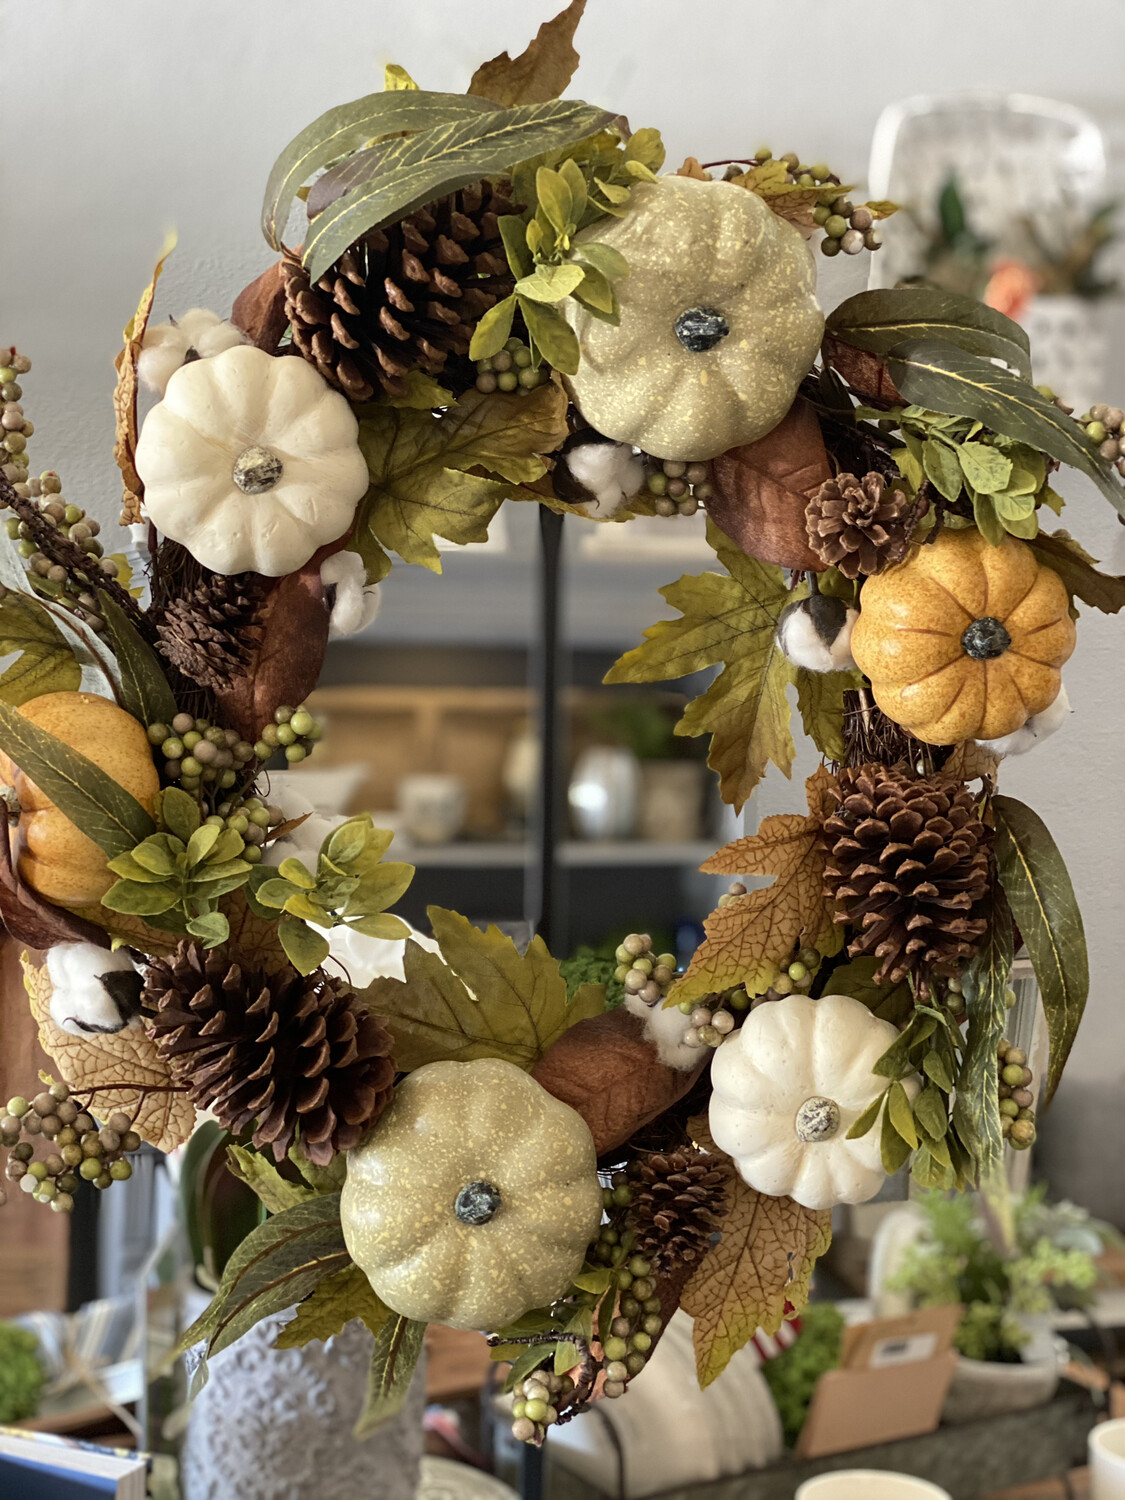 Wreath Mixed With Pumpkins